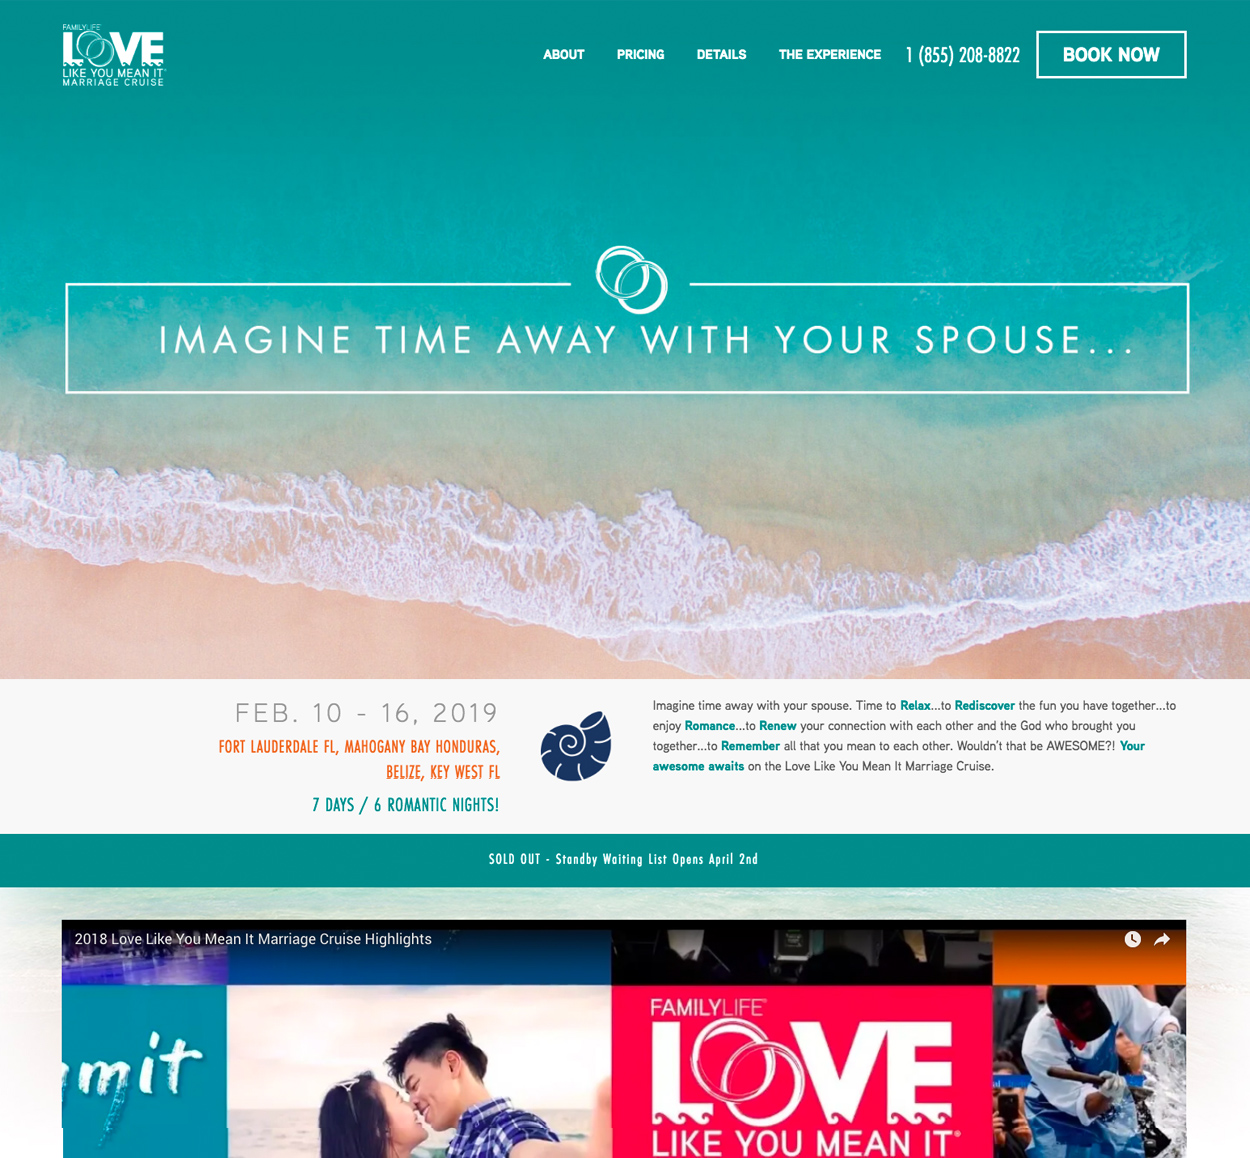 Love Like You Mean It website screenshot